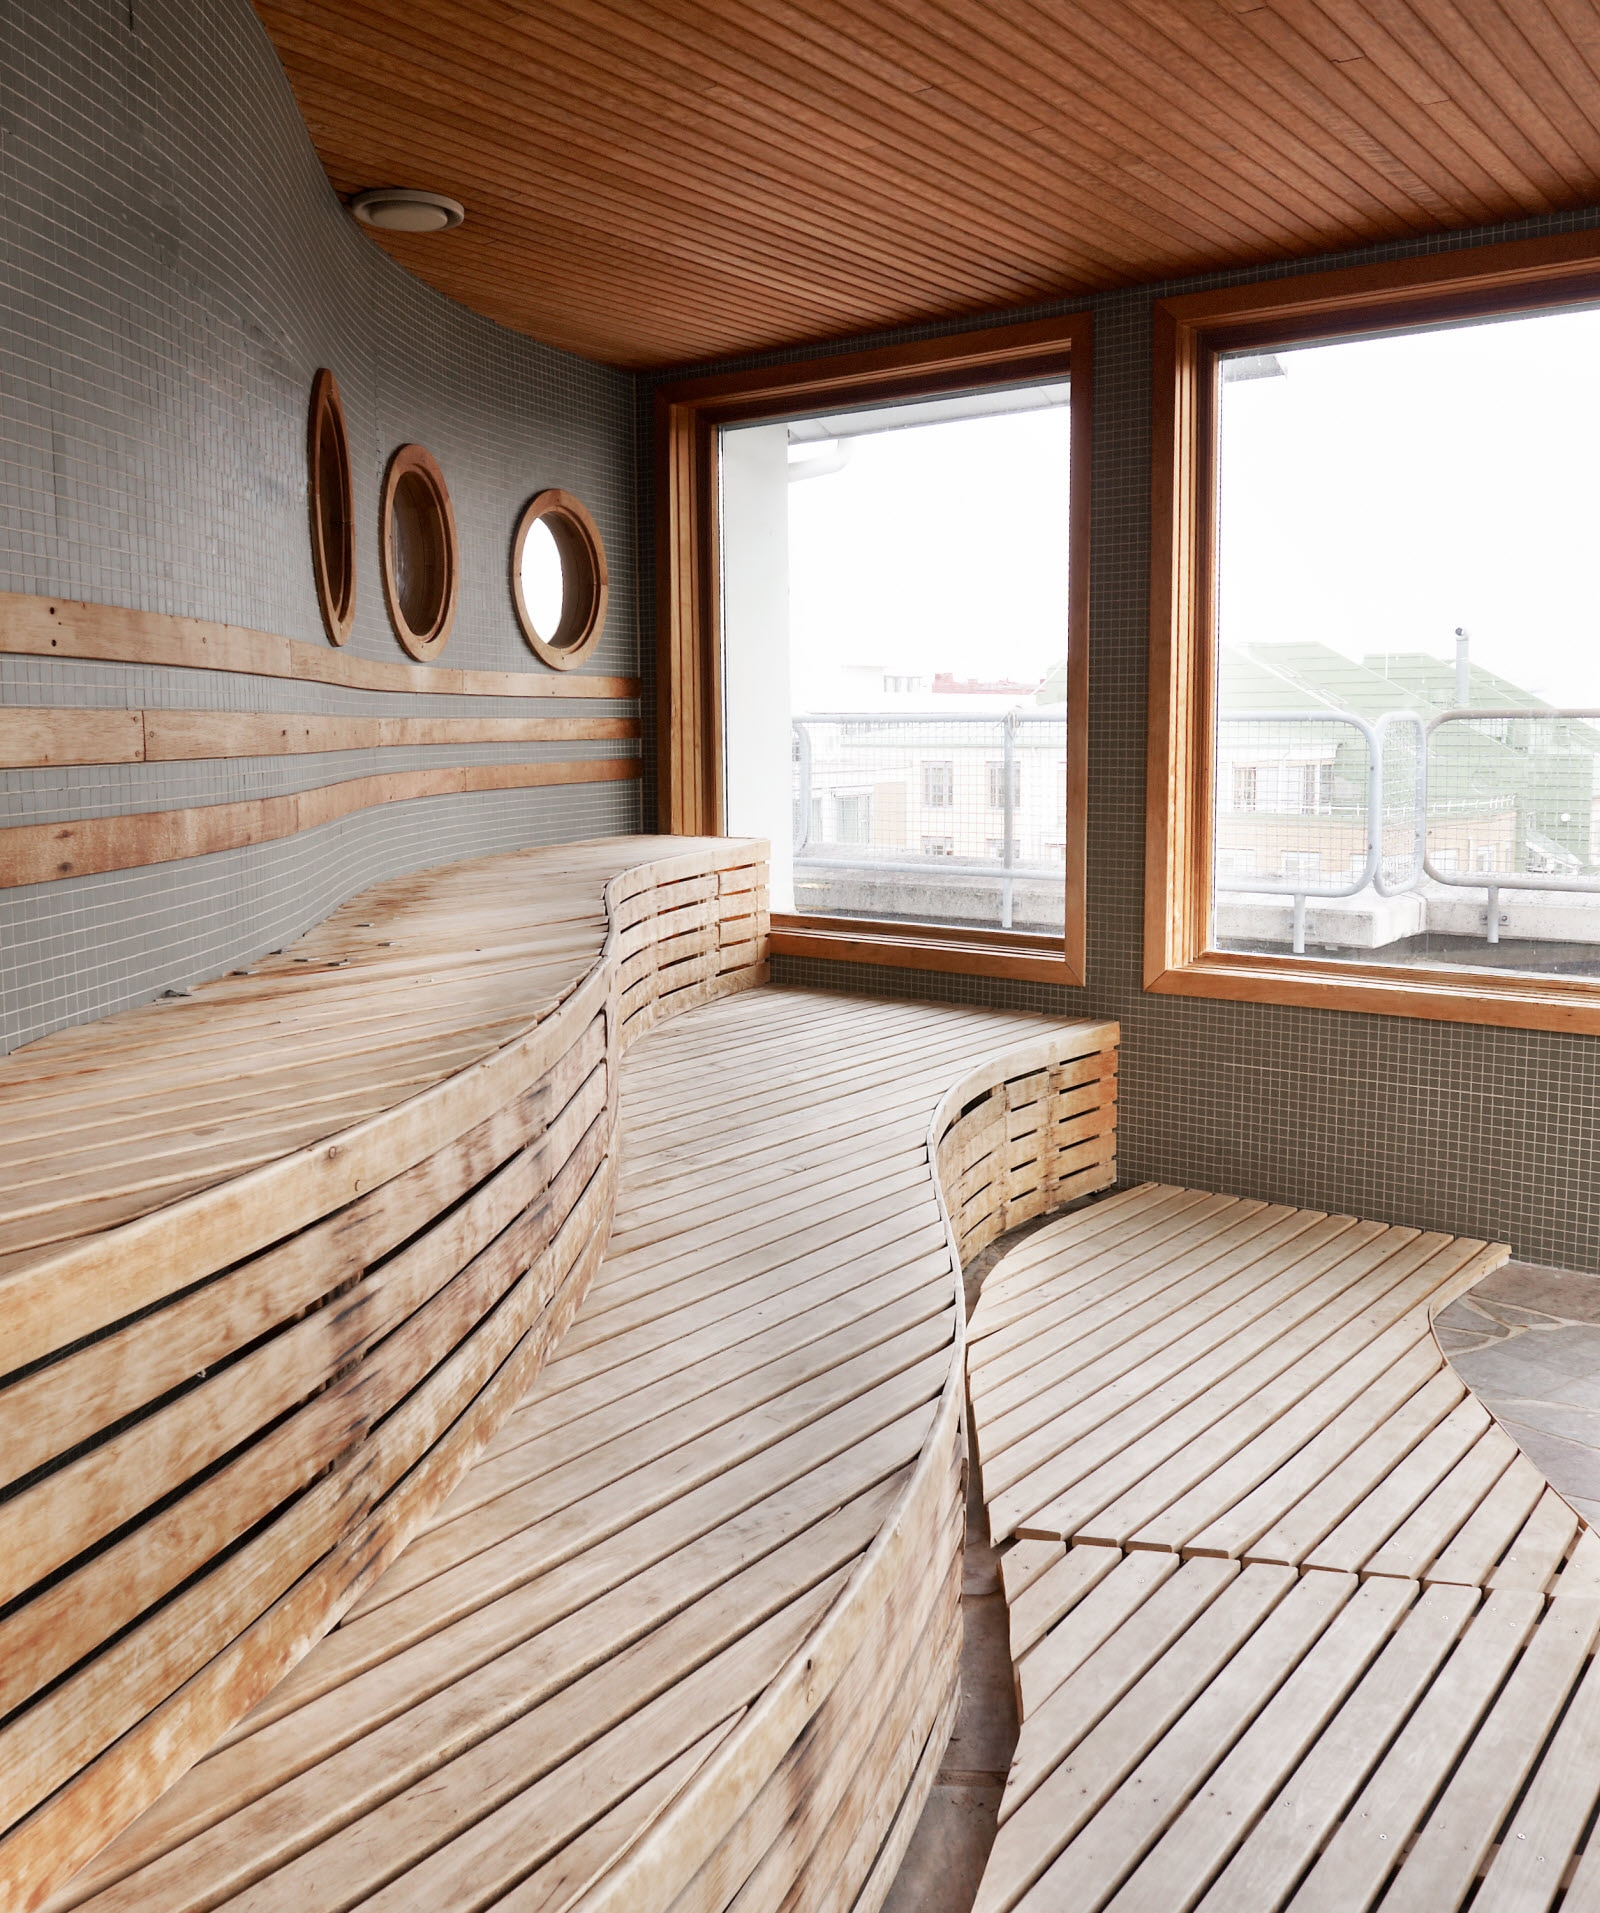 Scandic Crown, sauna